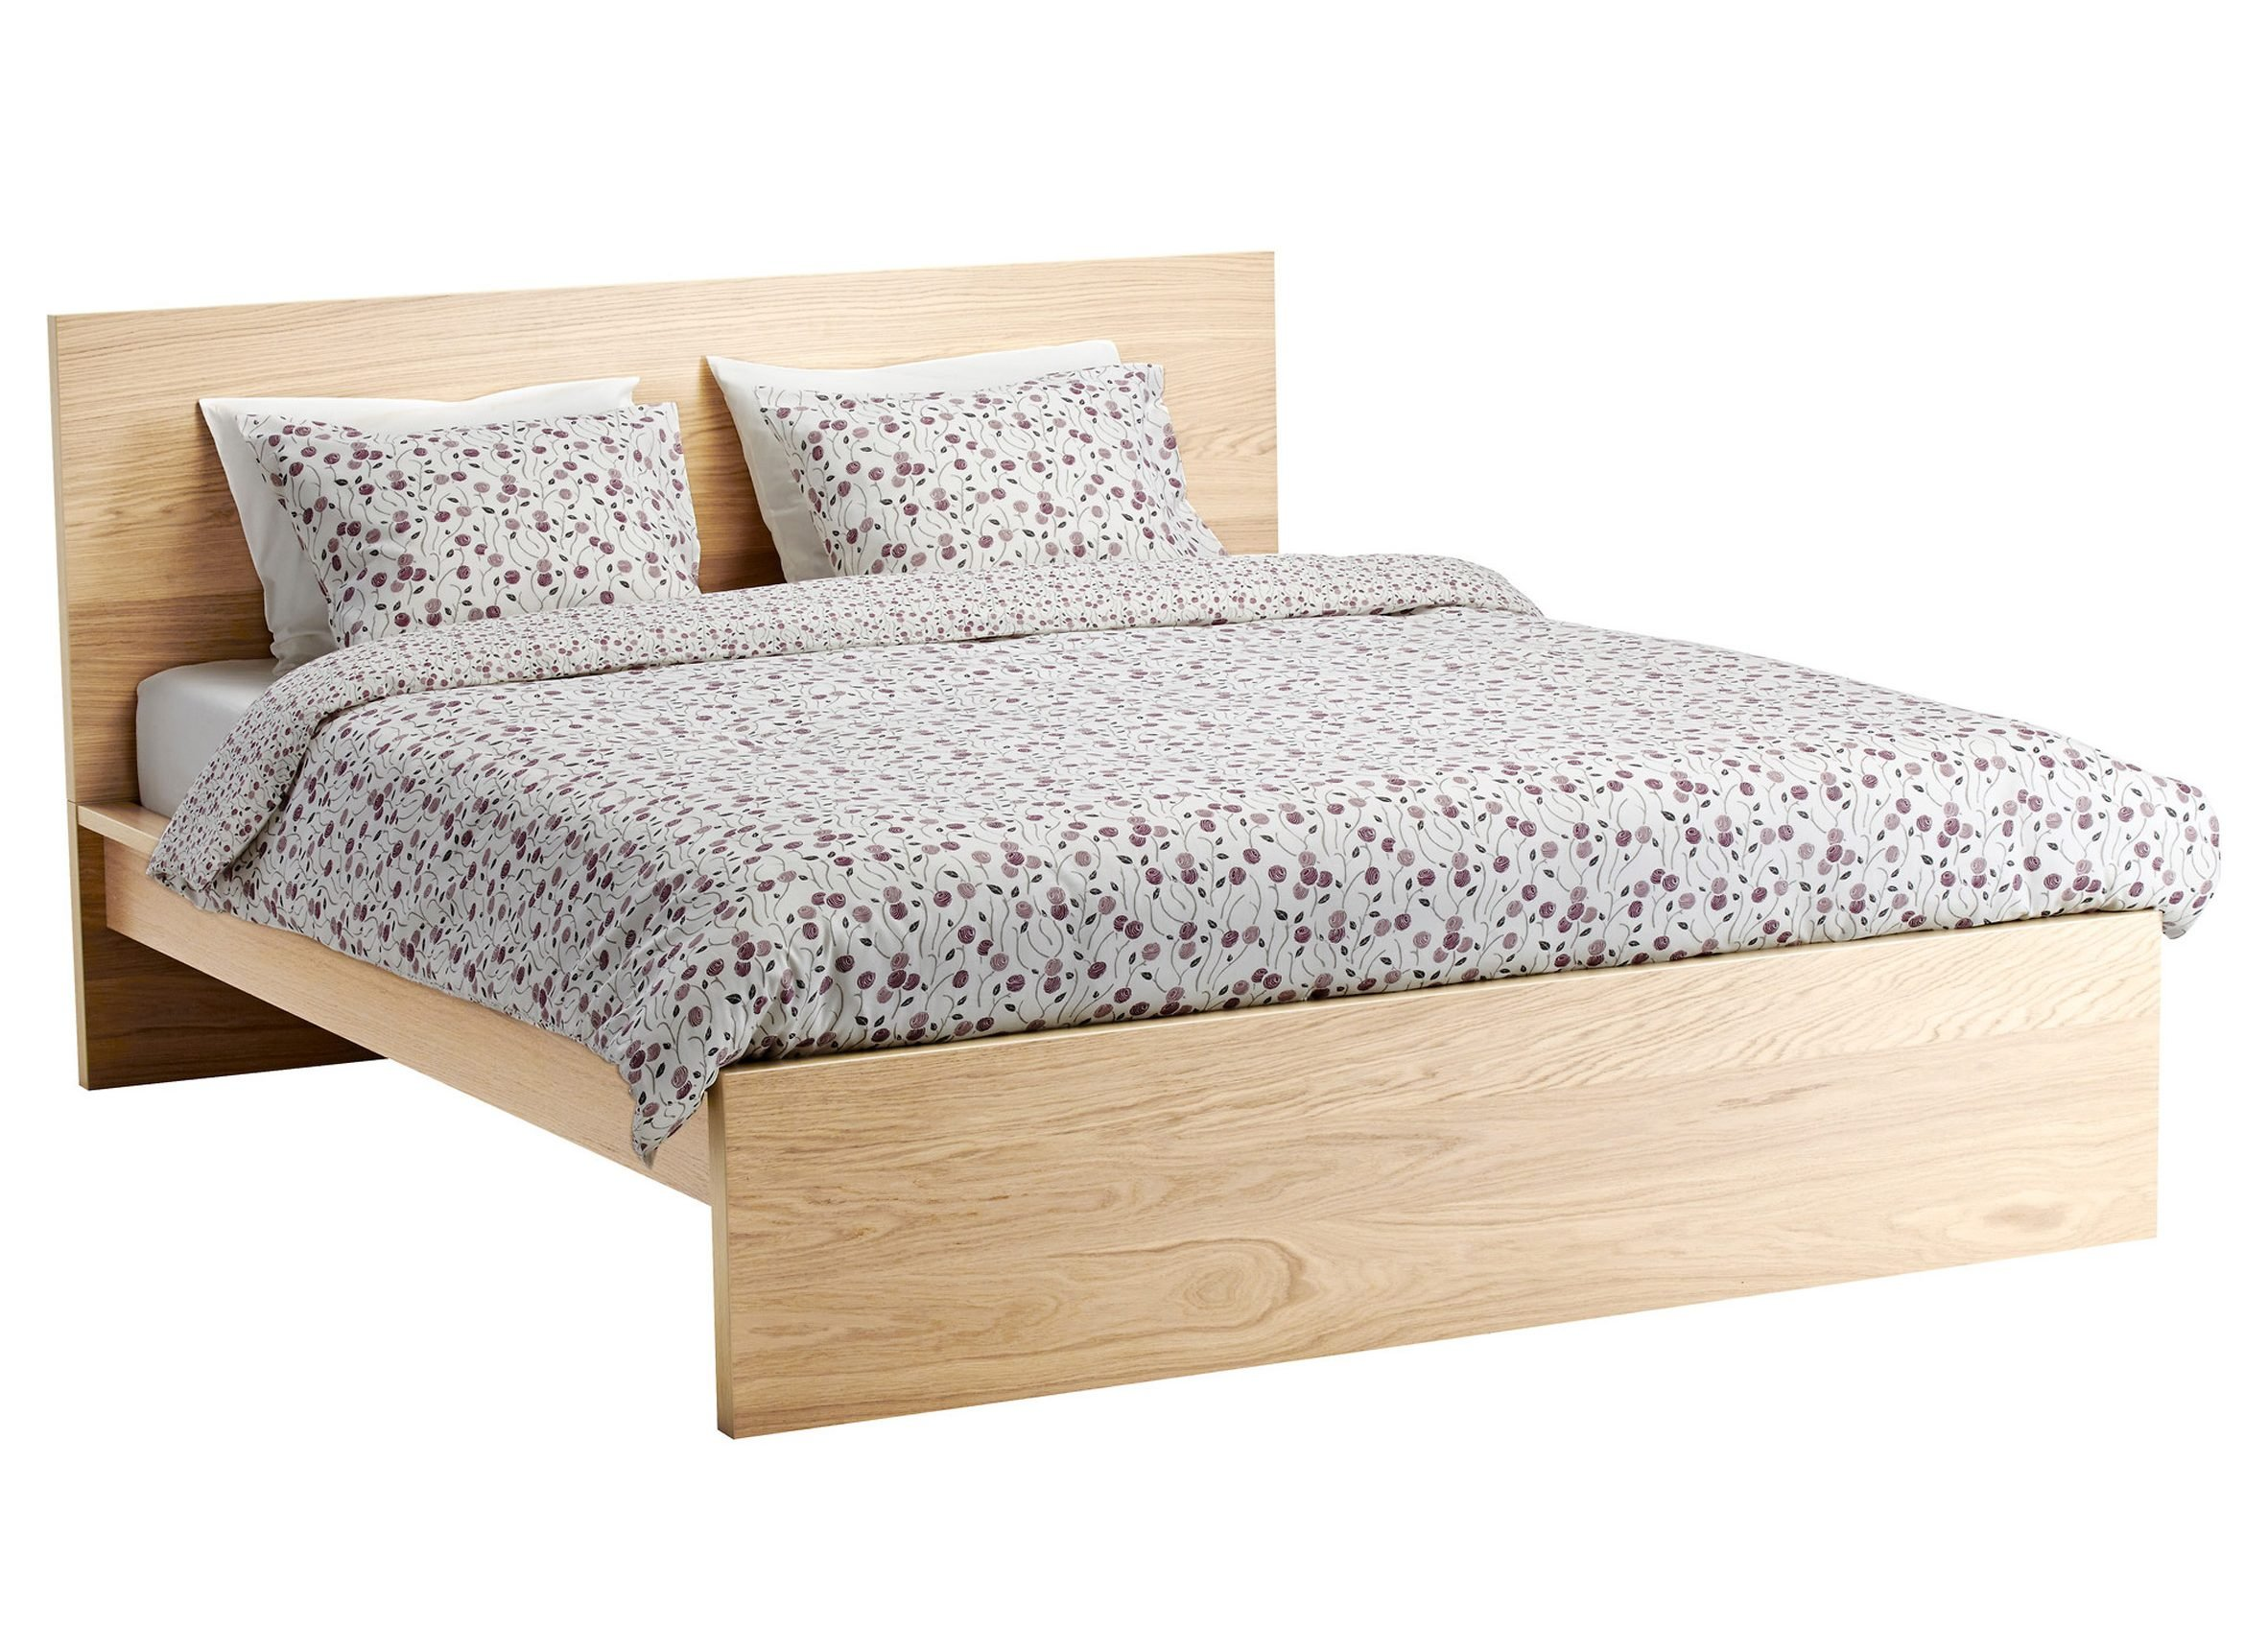 Bestselling IKEA bed infringes copyright claims e15